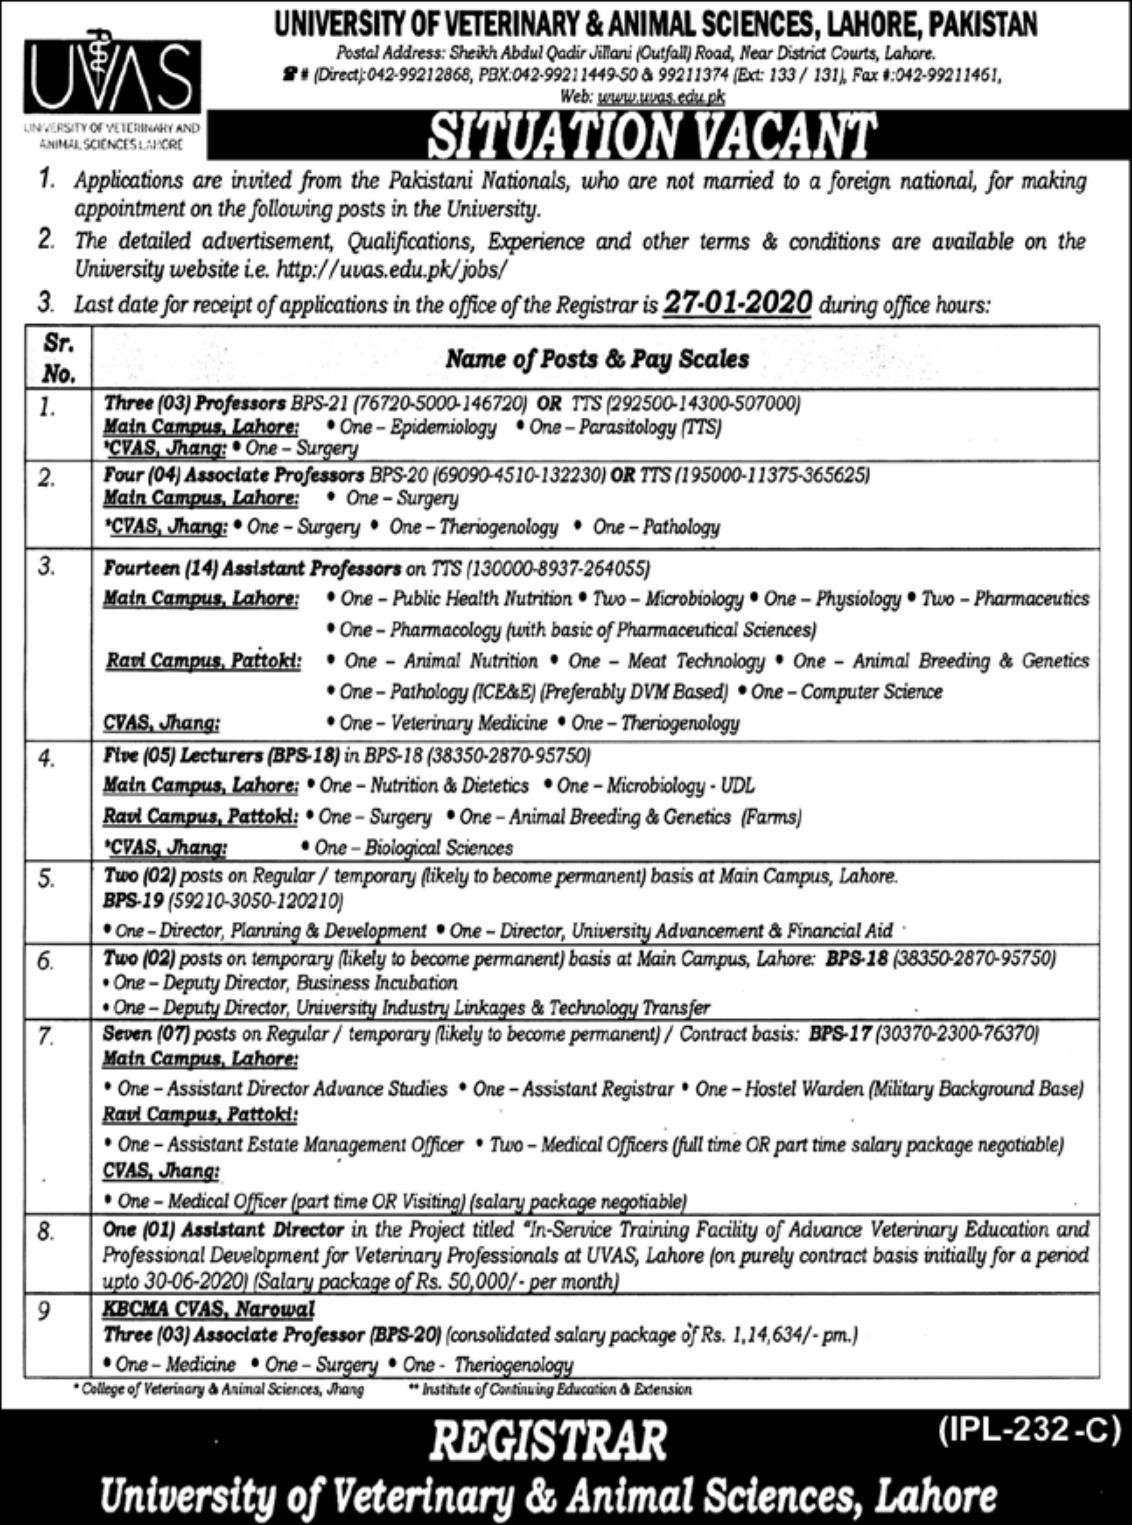 University of Veterinary & Animal Sciences UVAS Lahore Jobs 2020